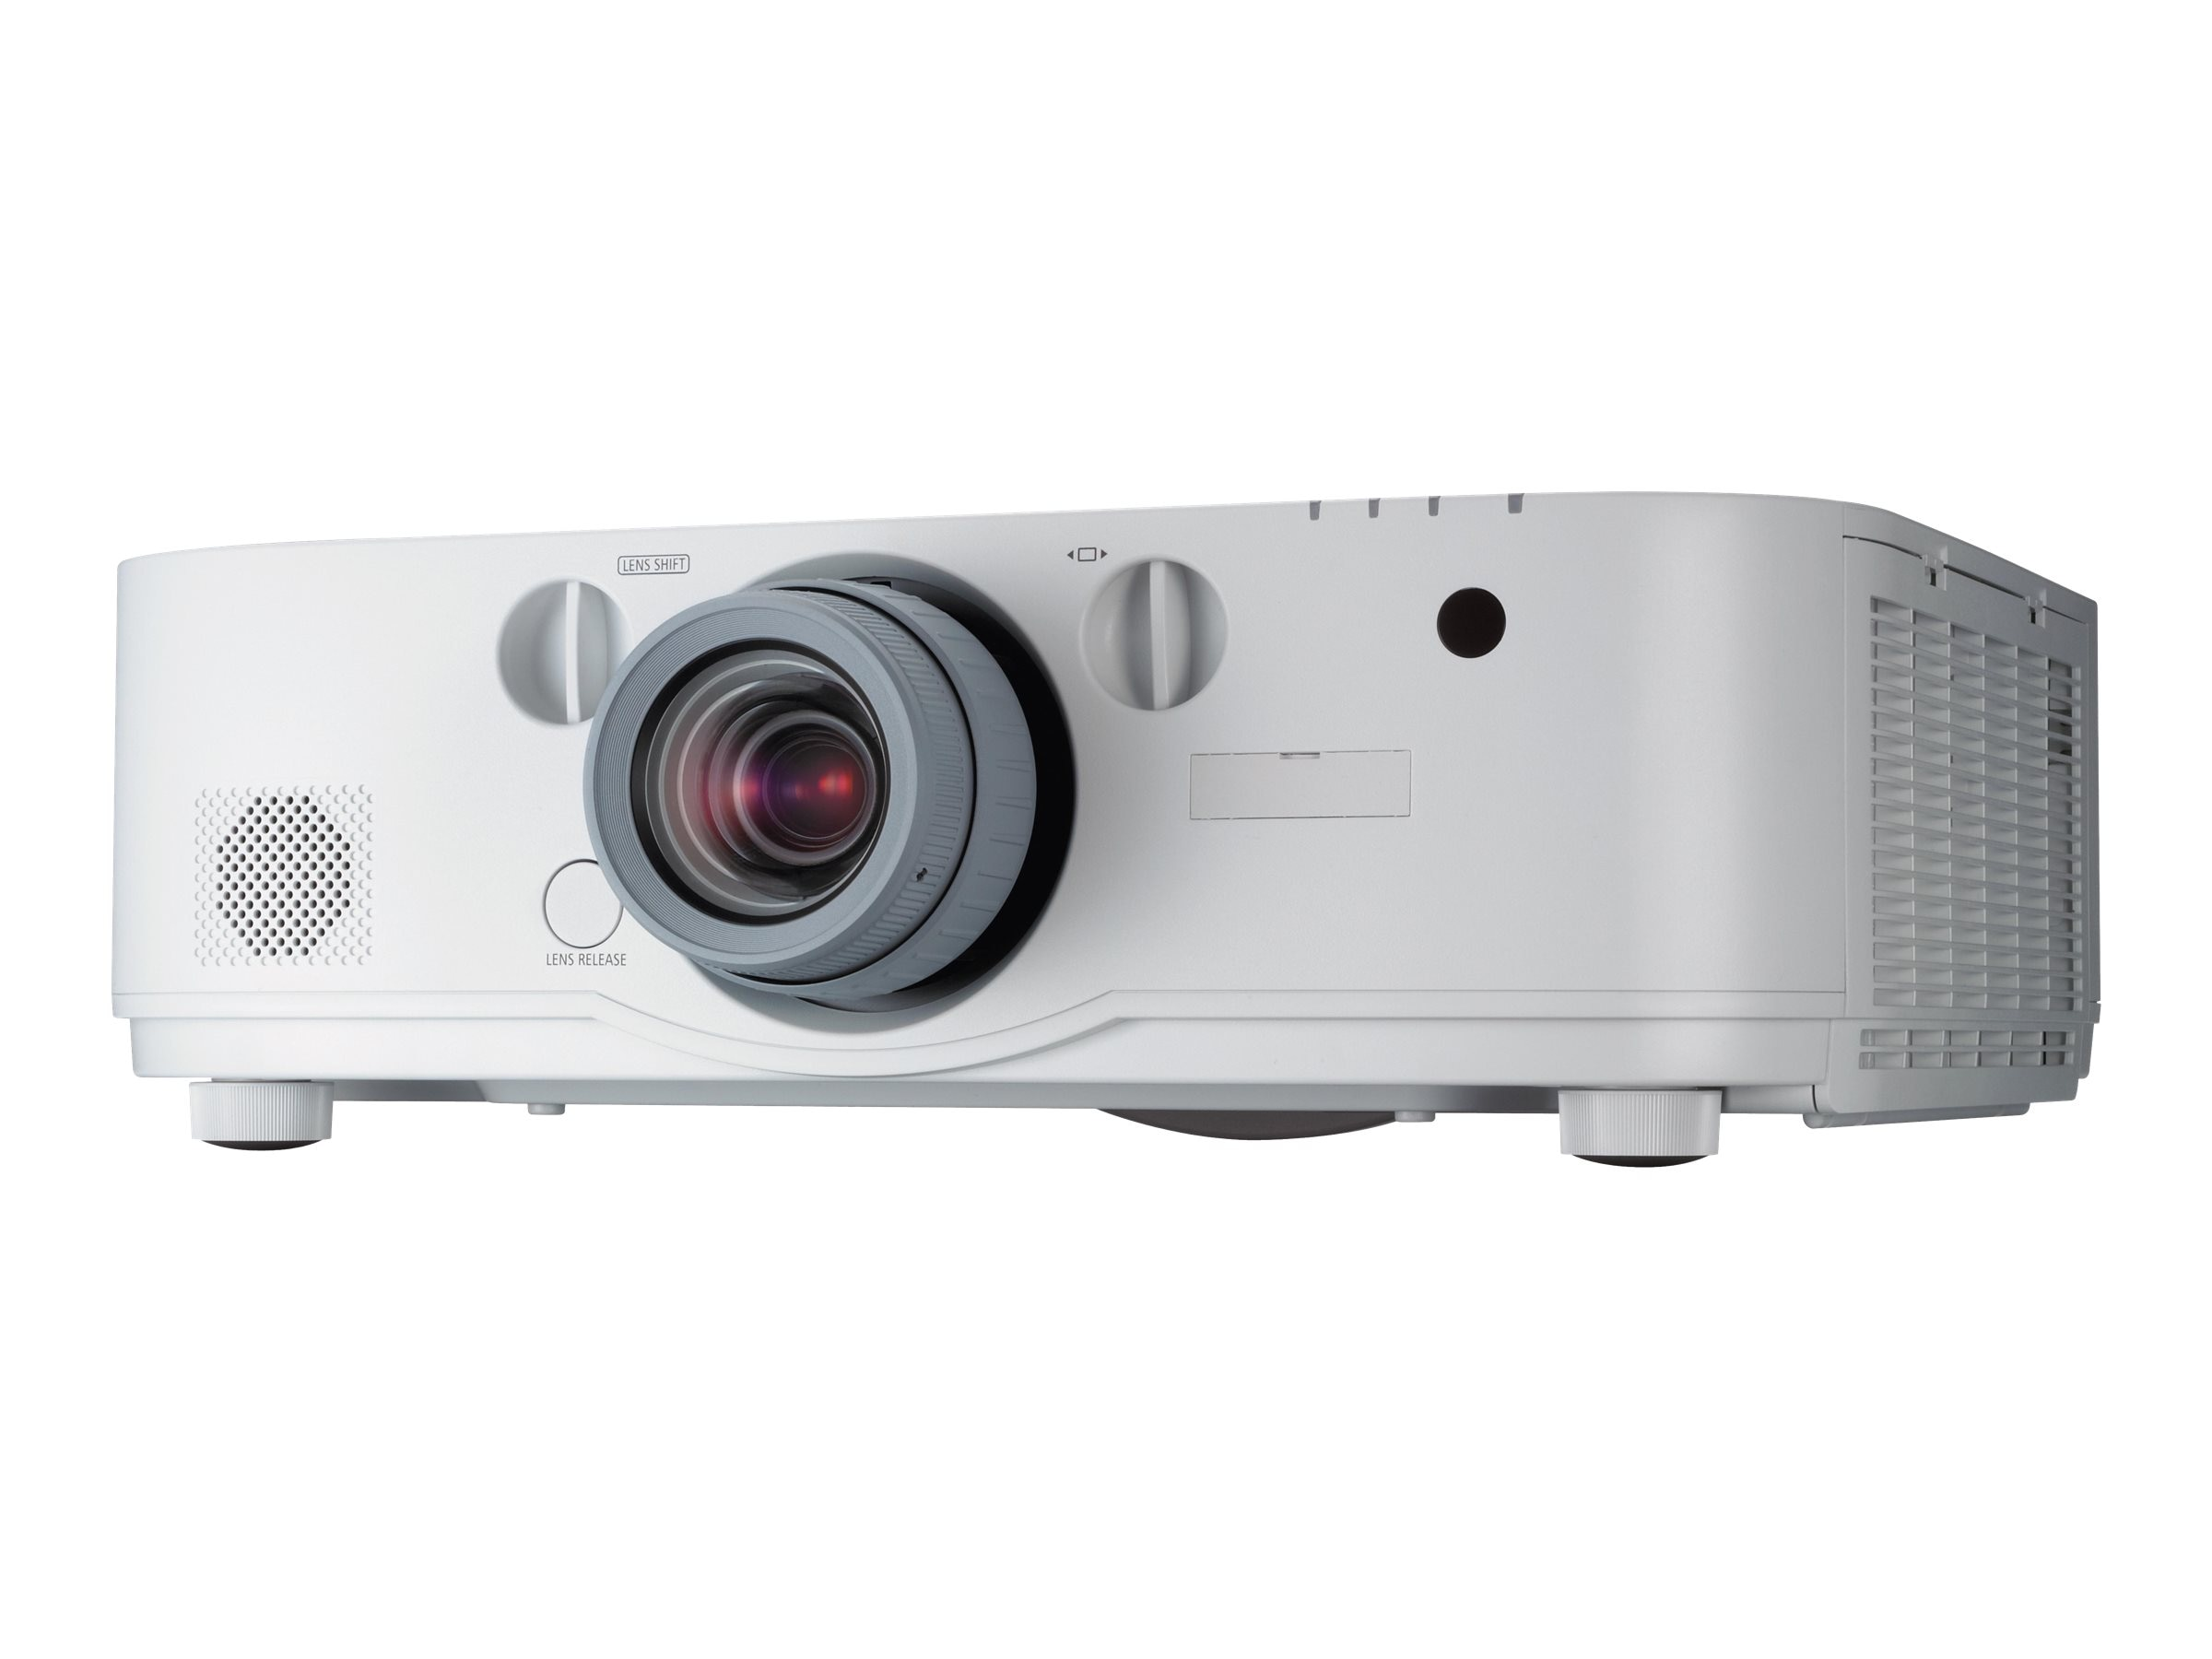 NEC PA672W WXGA LCD Projector, 6700 Lumens, White with 1.5-3.0:1 Zoom Lens, NP-PA672W-13ZL, 17542236, Projectors